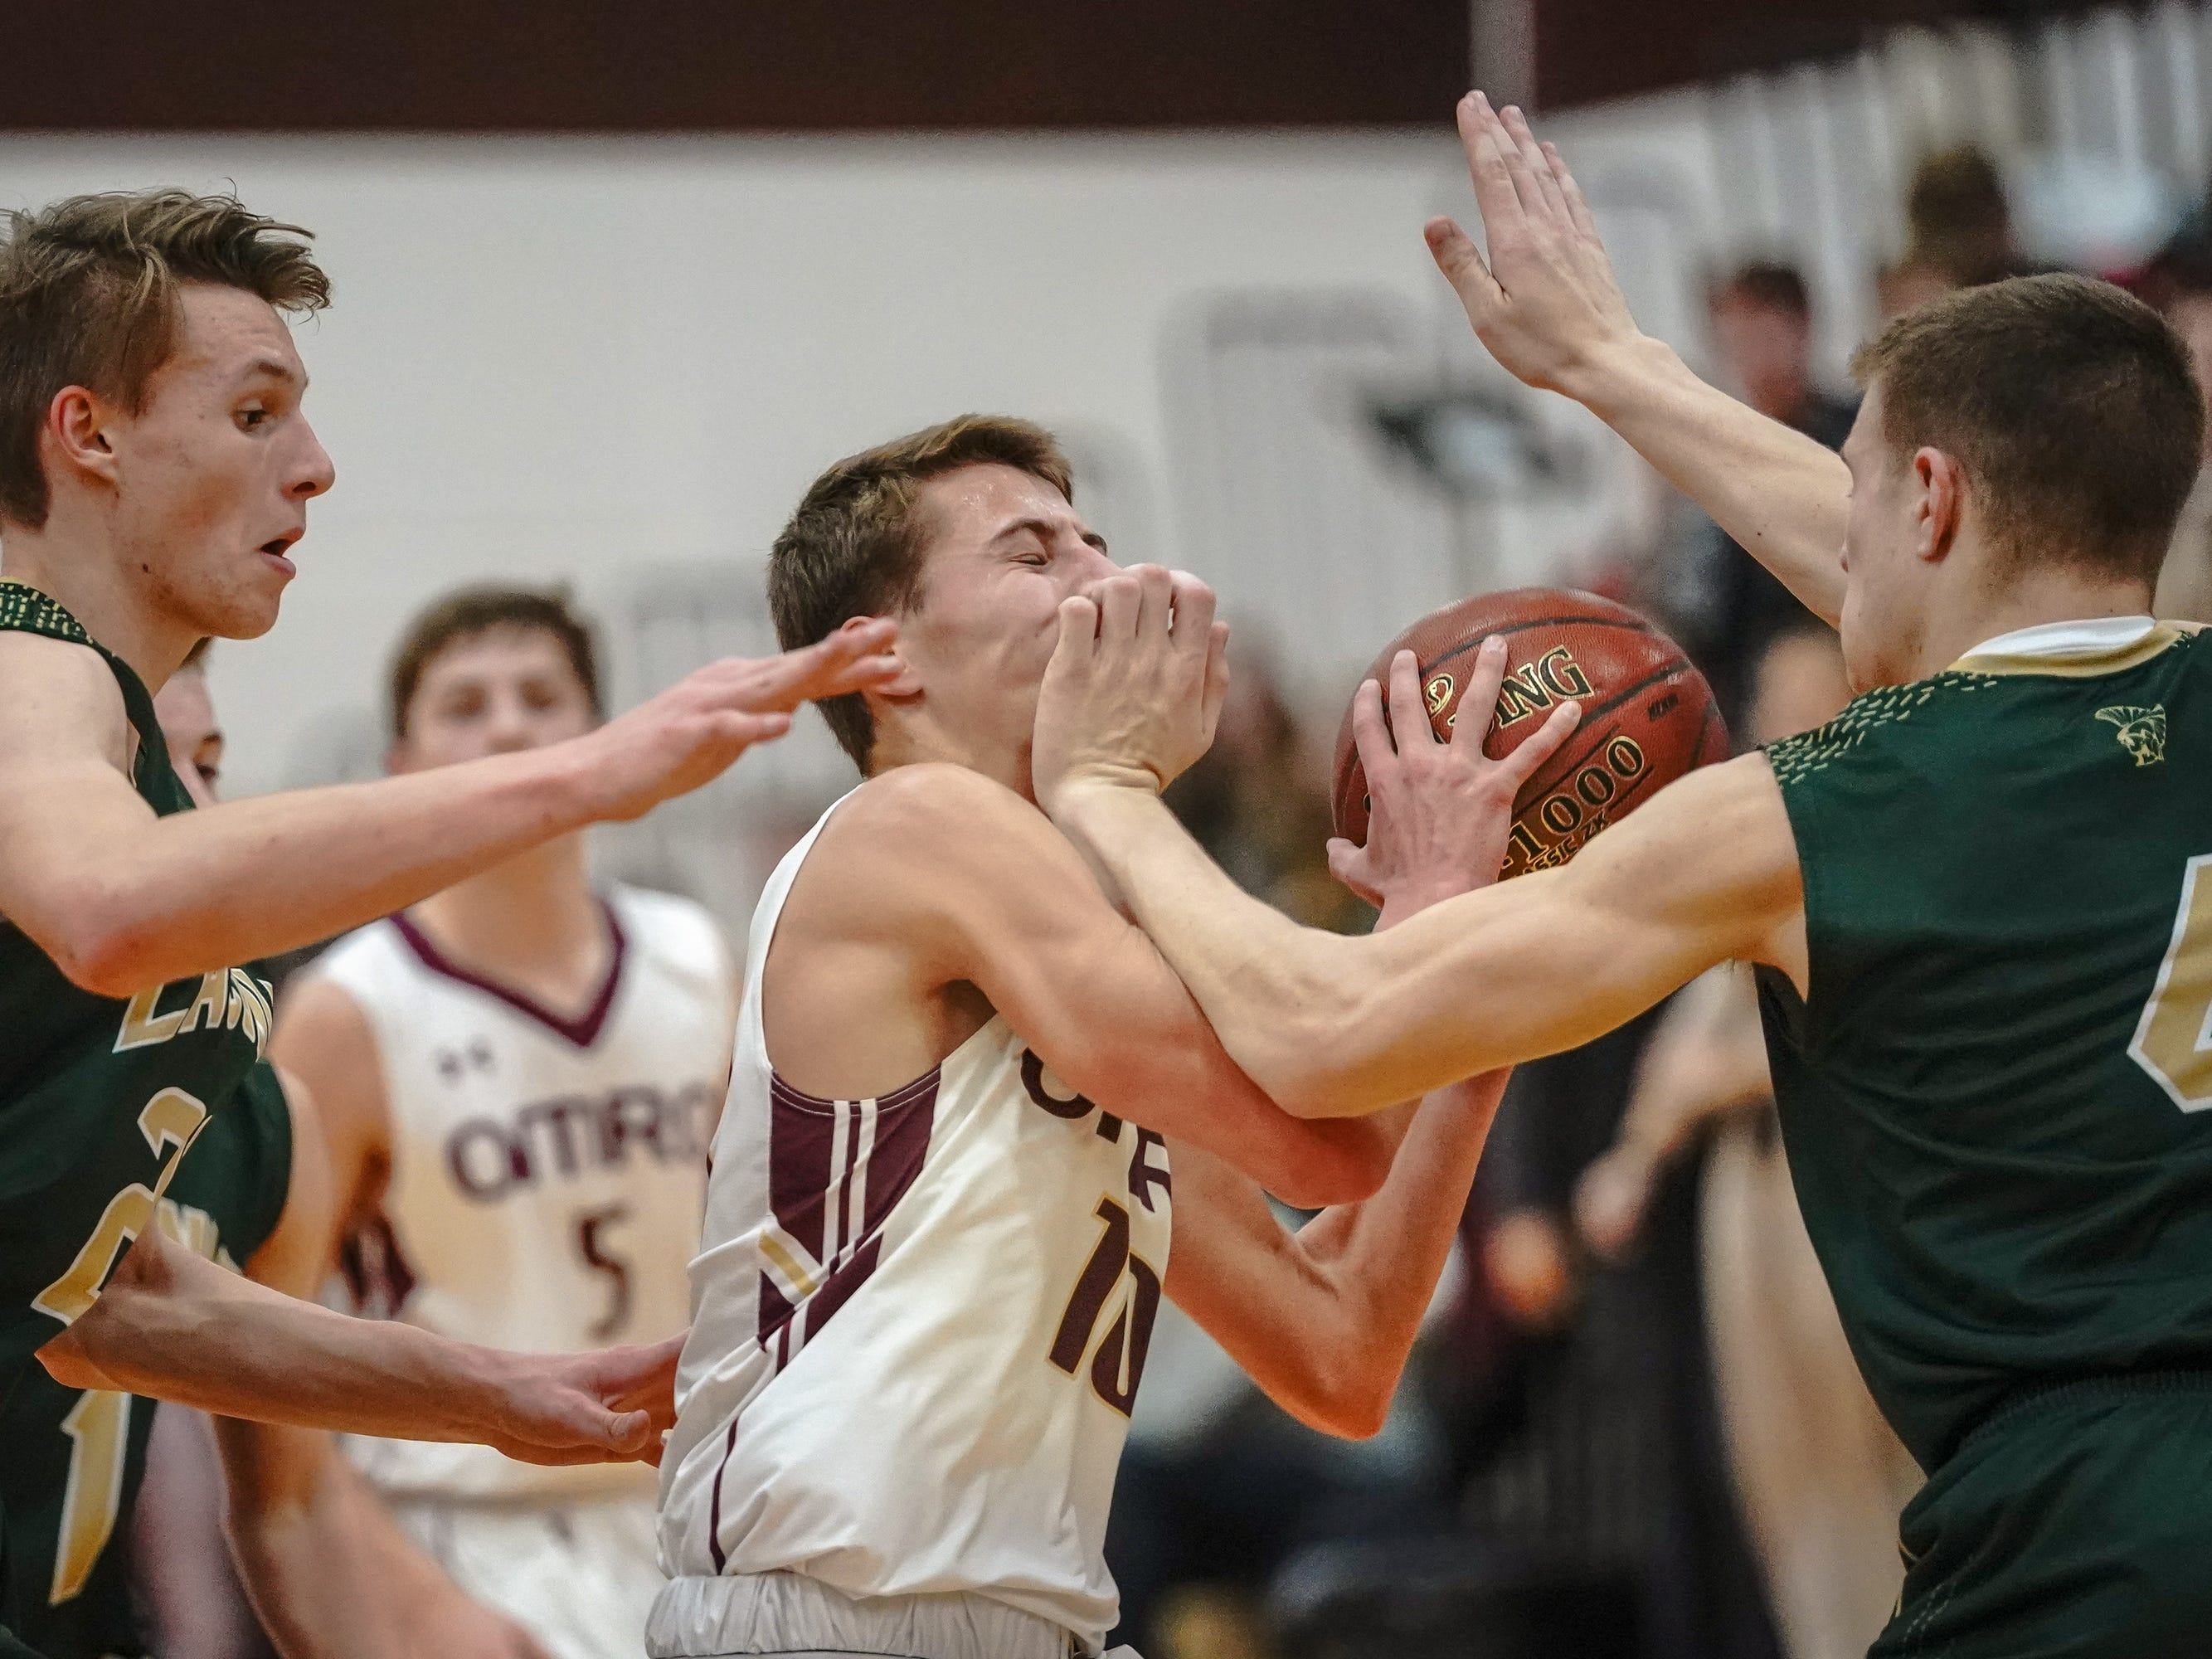 Cade Stachura (10) of Omro gets blocked by Jake Davies (4) of Laconia. The Omro Foxes hosted the Laconia Spartans in a Flyway Conference basketball game Friday evening, January 11, 2019.